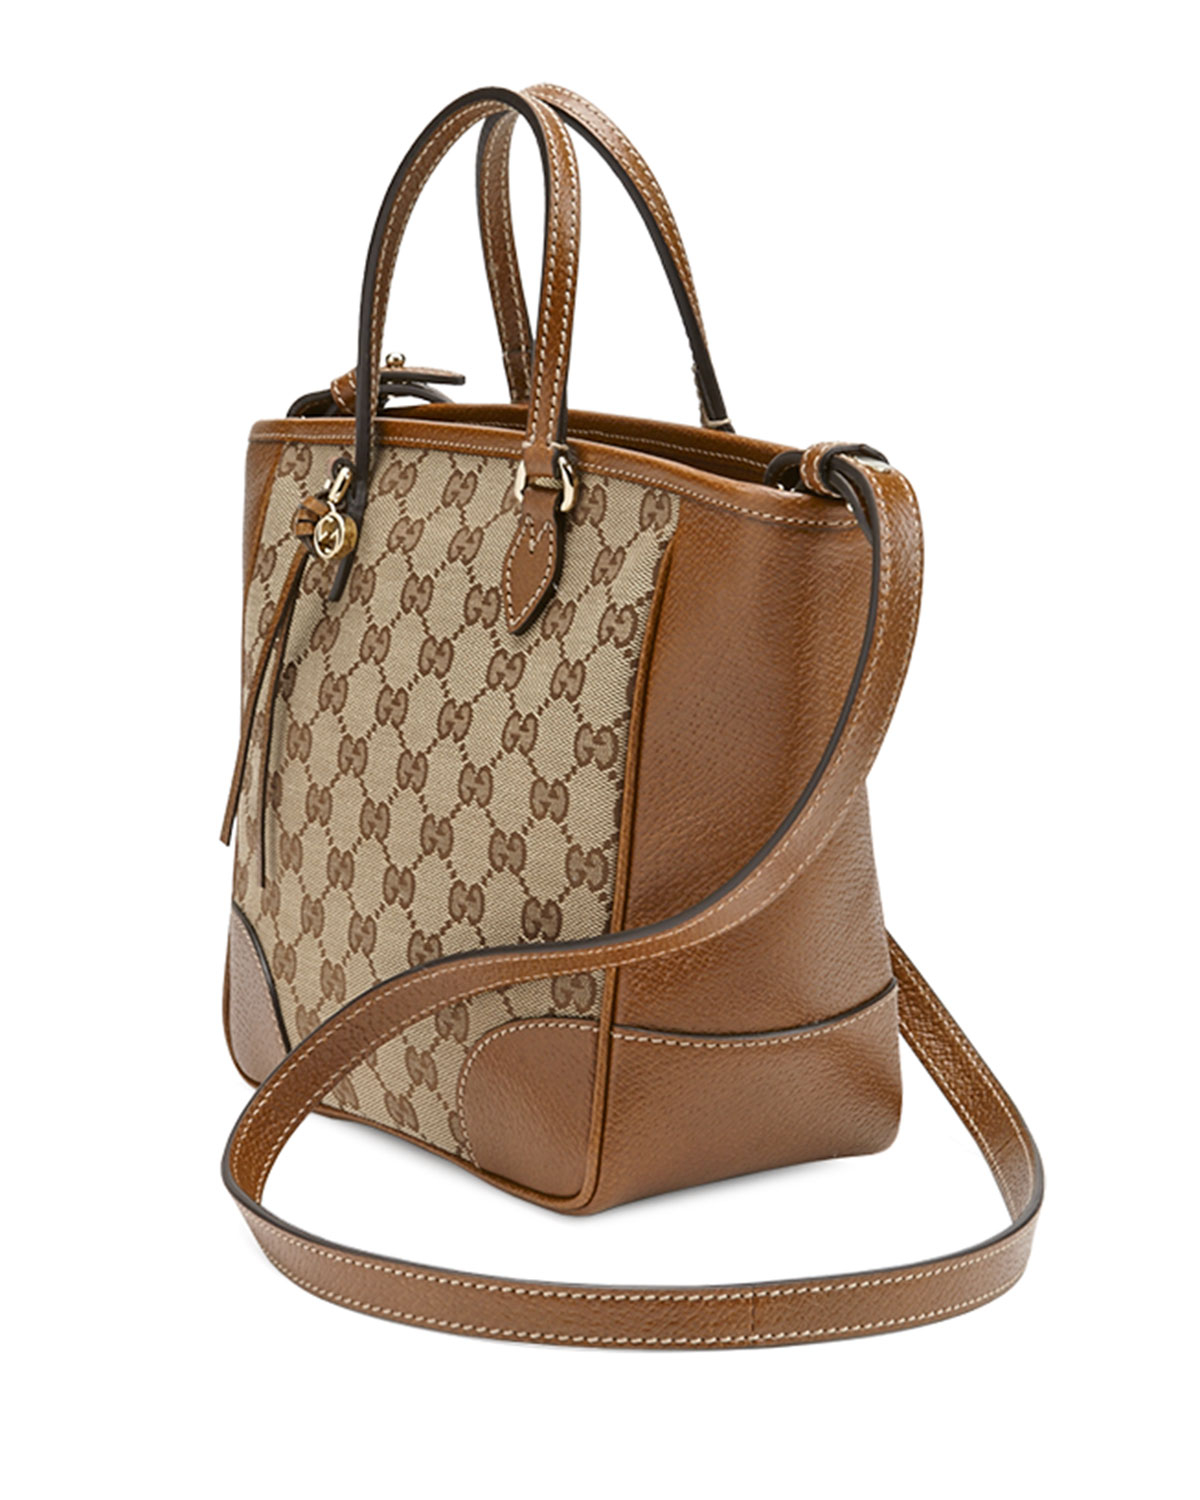 72216e37a6e Lyst - Gucci Bree Small Gg Canvas Tote Bag in Brown